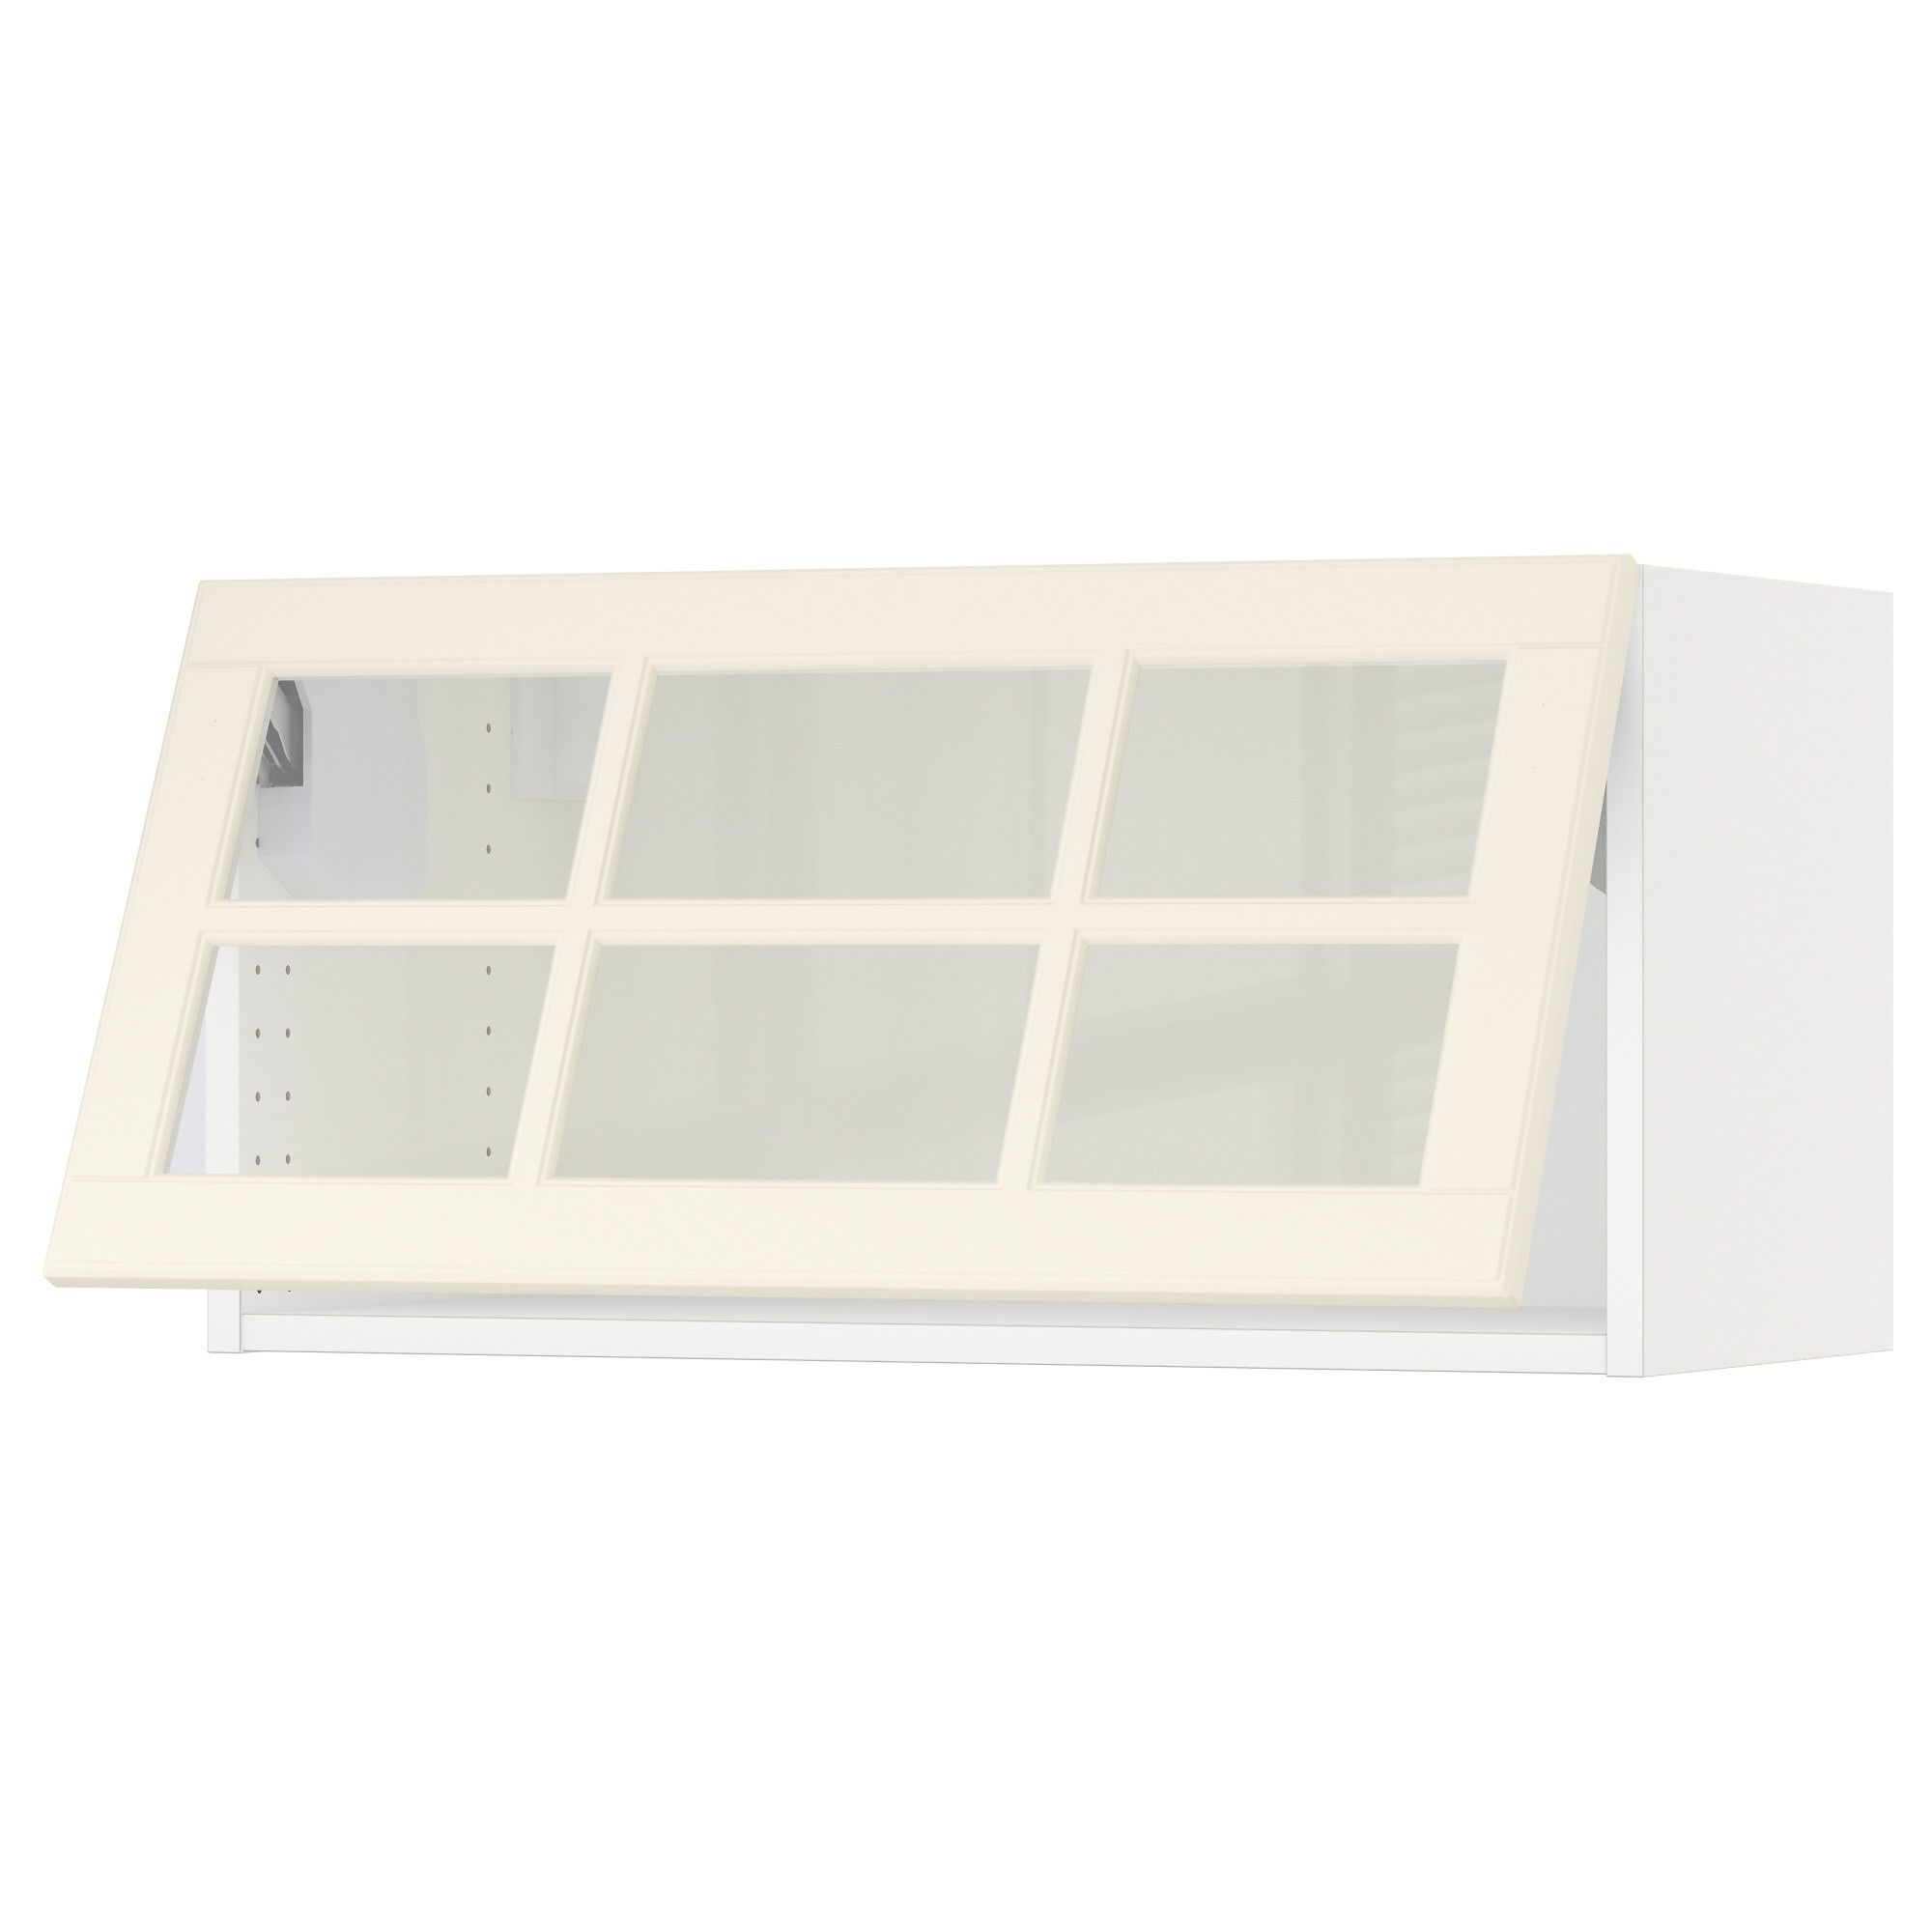 Sektion Horizontal Wall Cabinet Glass Door White Bodbyn Off White Ikea In 2020 Wall Cabinet Glass Door Glass Cabinet Doors